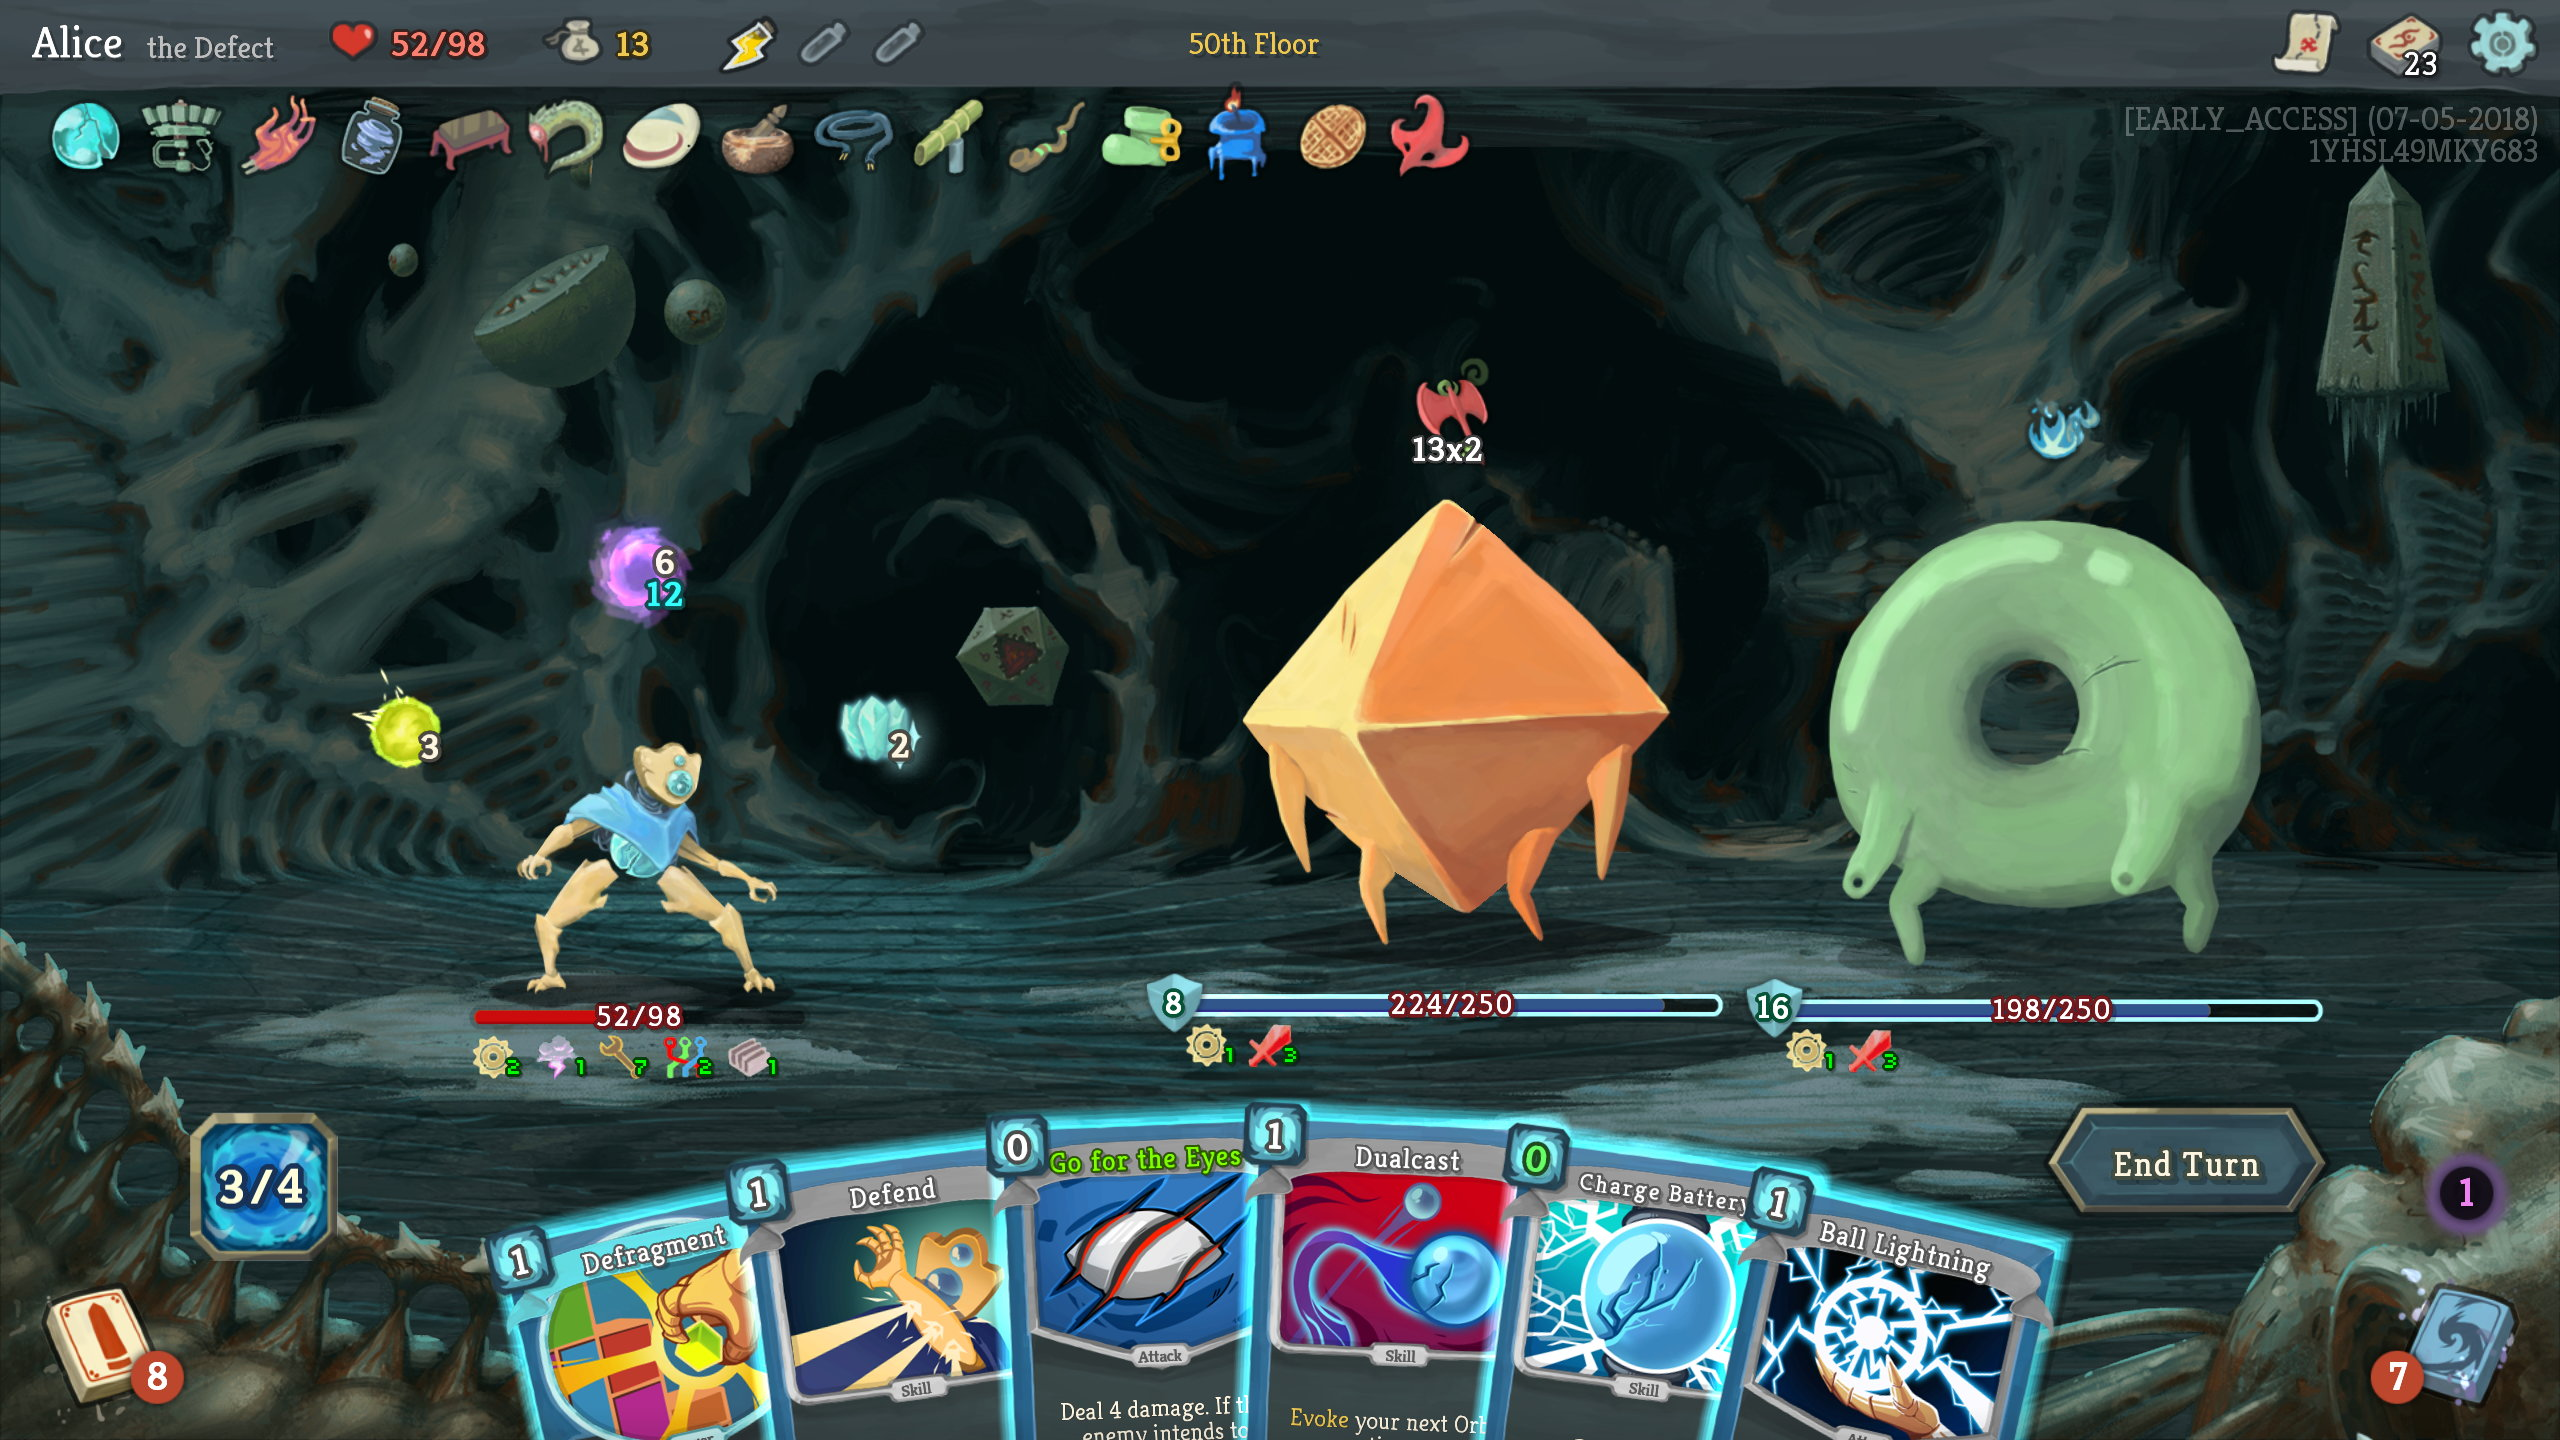 Jan 14 The very best Slay The Spire mod for now and forever